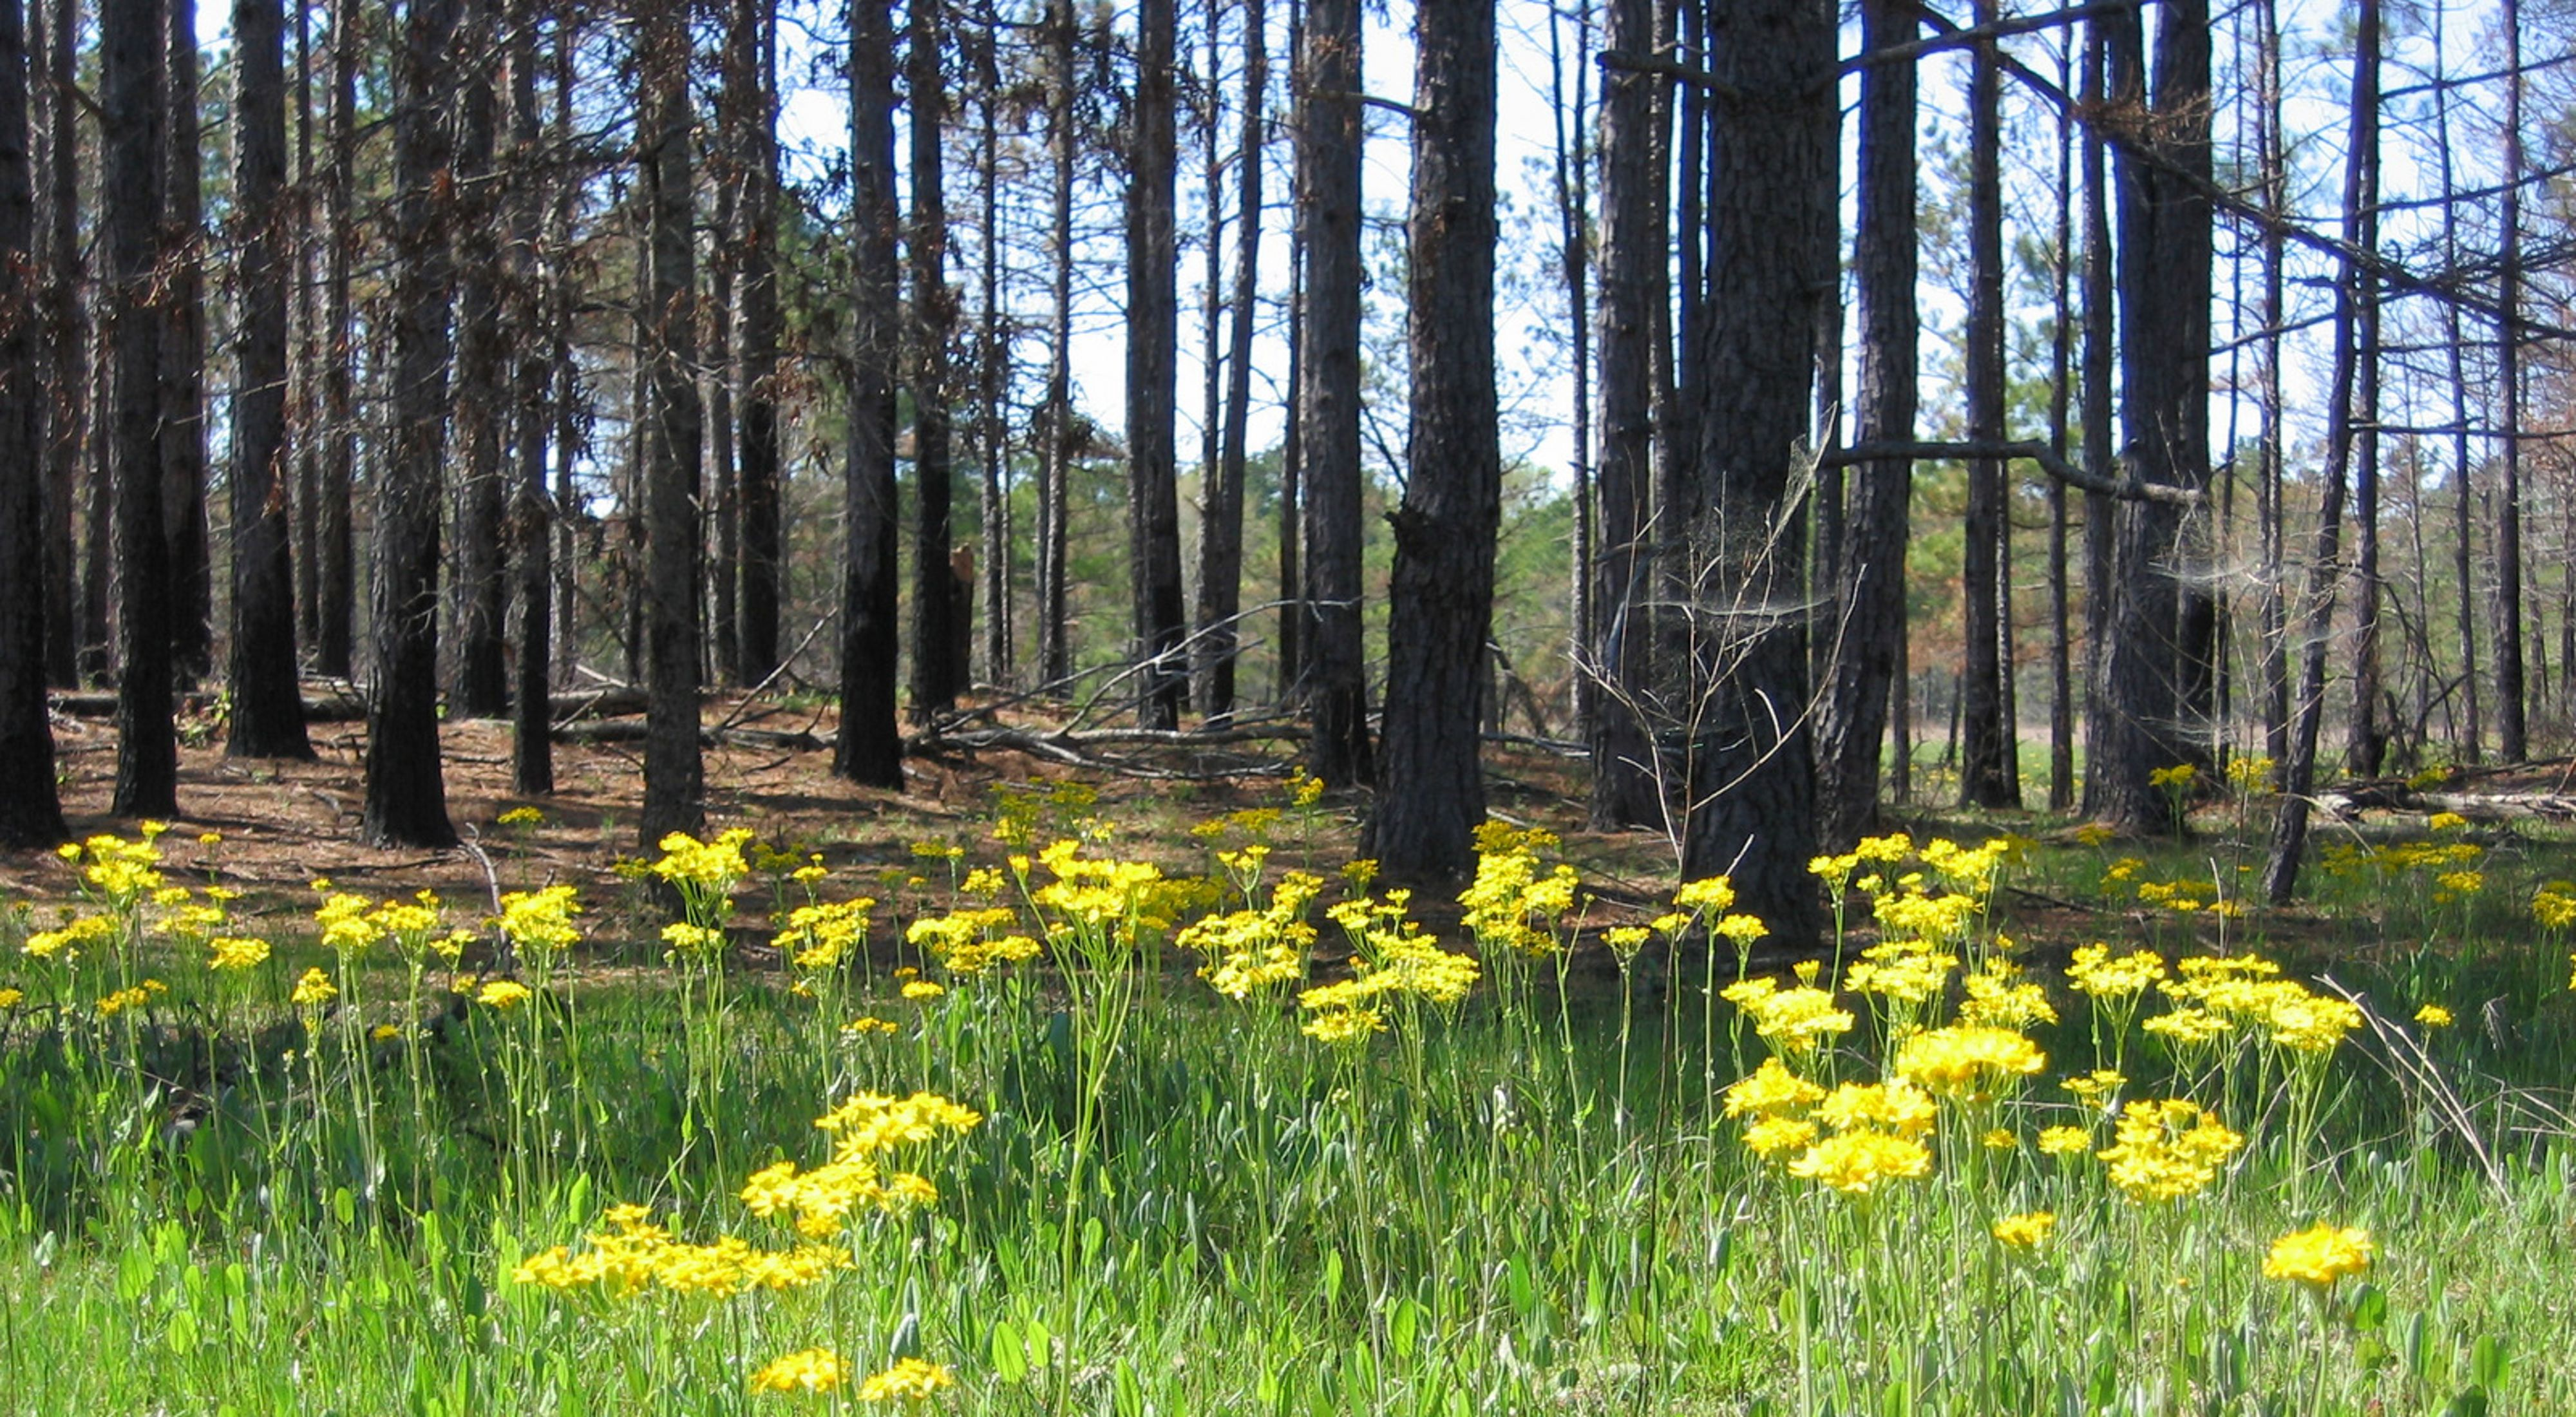 TNC works here on ecologically compatible forestry: working with forest landowners to demonstrate the connections between ecosystem health and economic return.